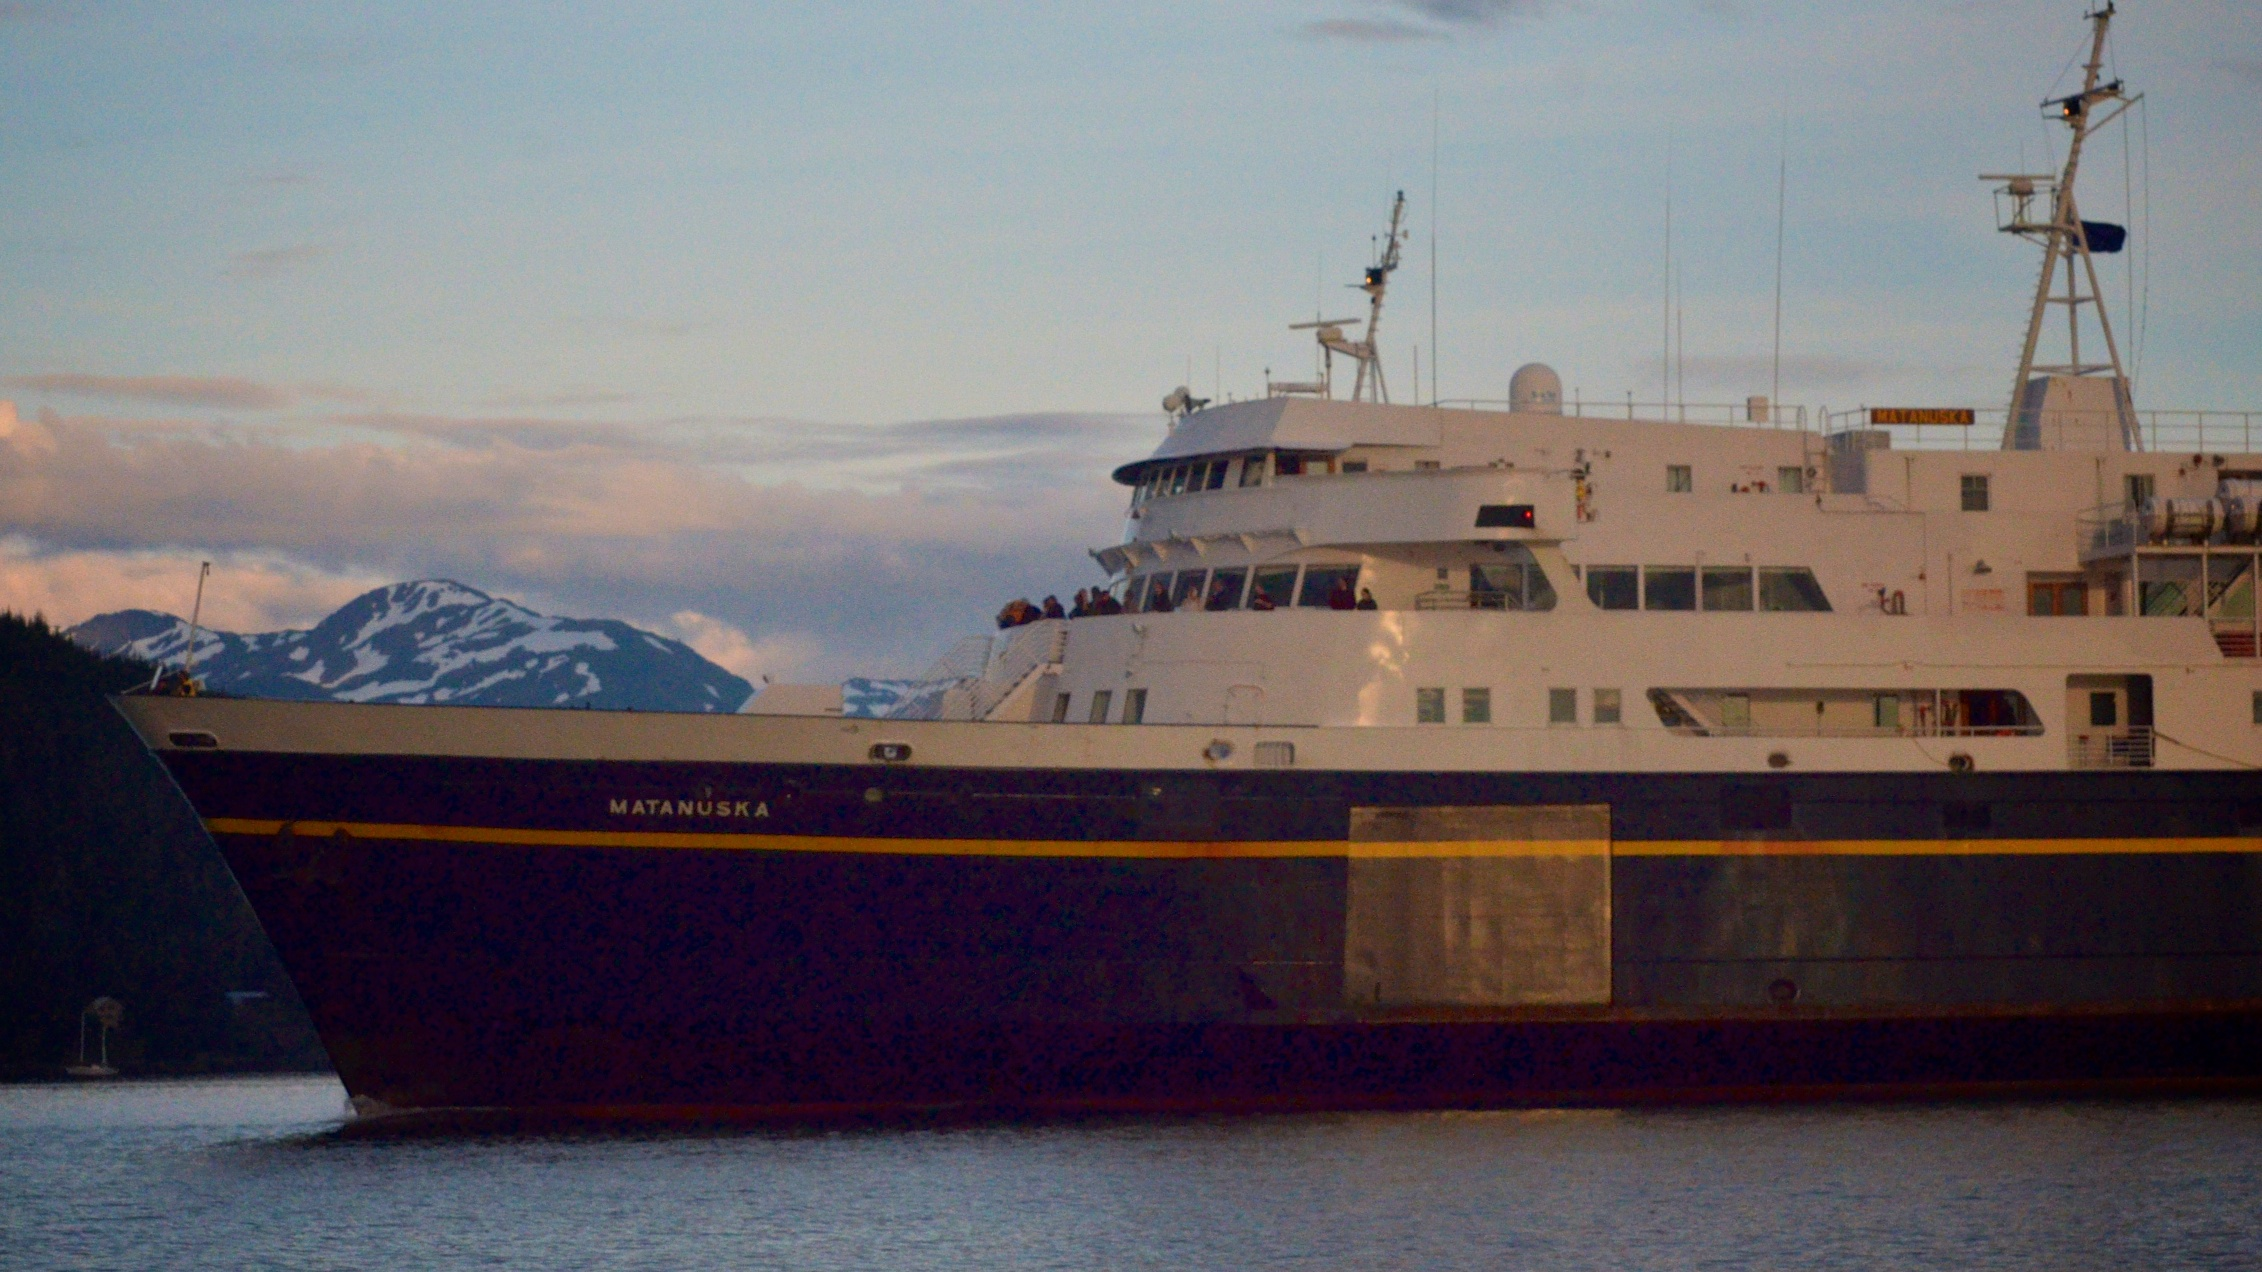 Matanuska ferry coming into Auke Bay